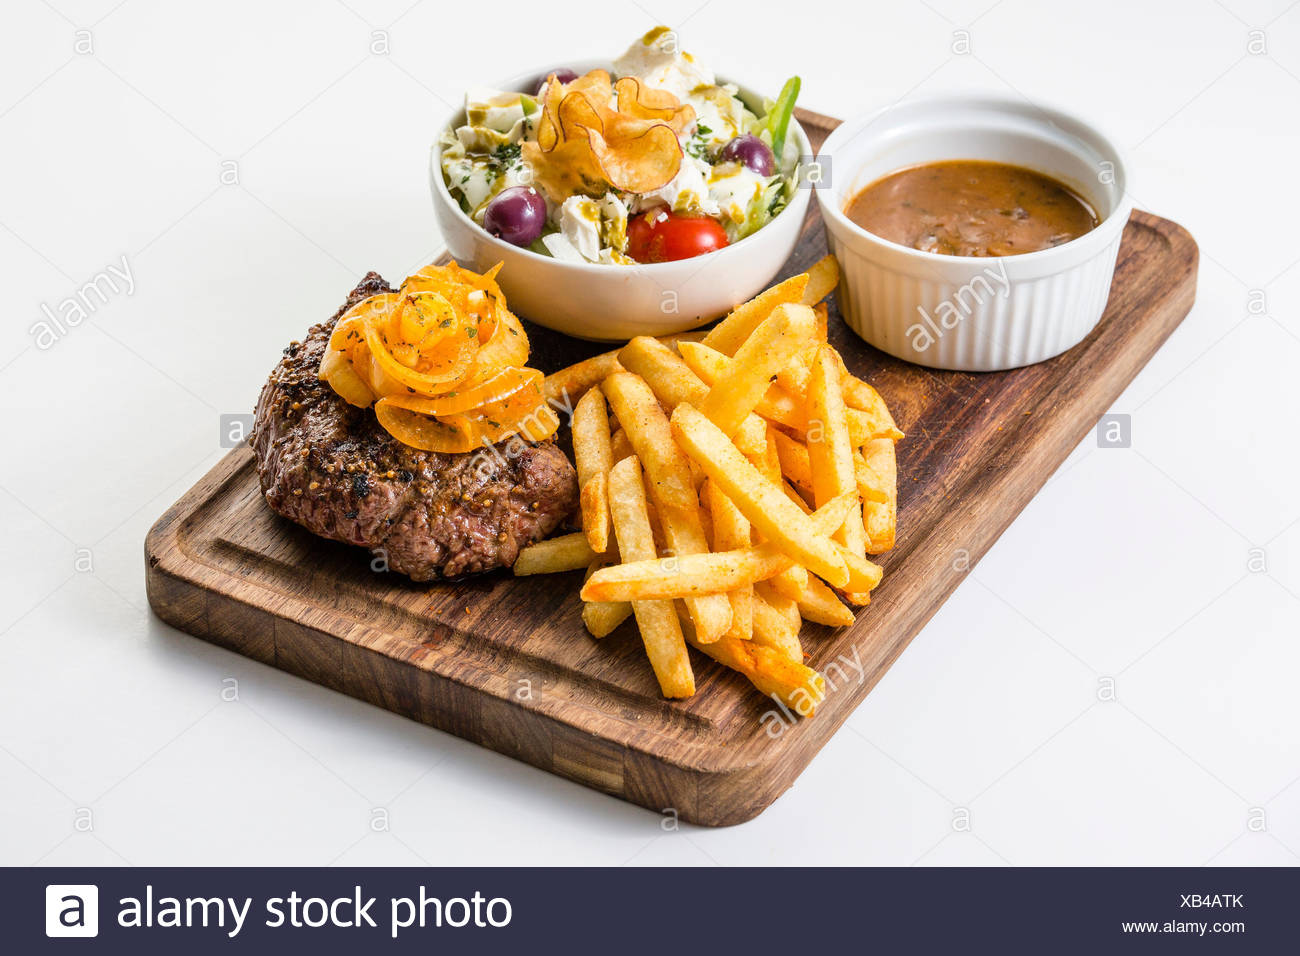 Wild steak with braised onions, French fries and a small salad - Stock Image